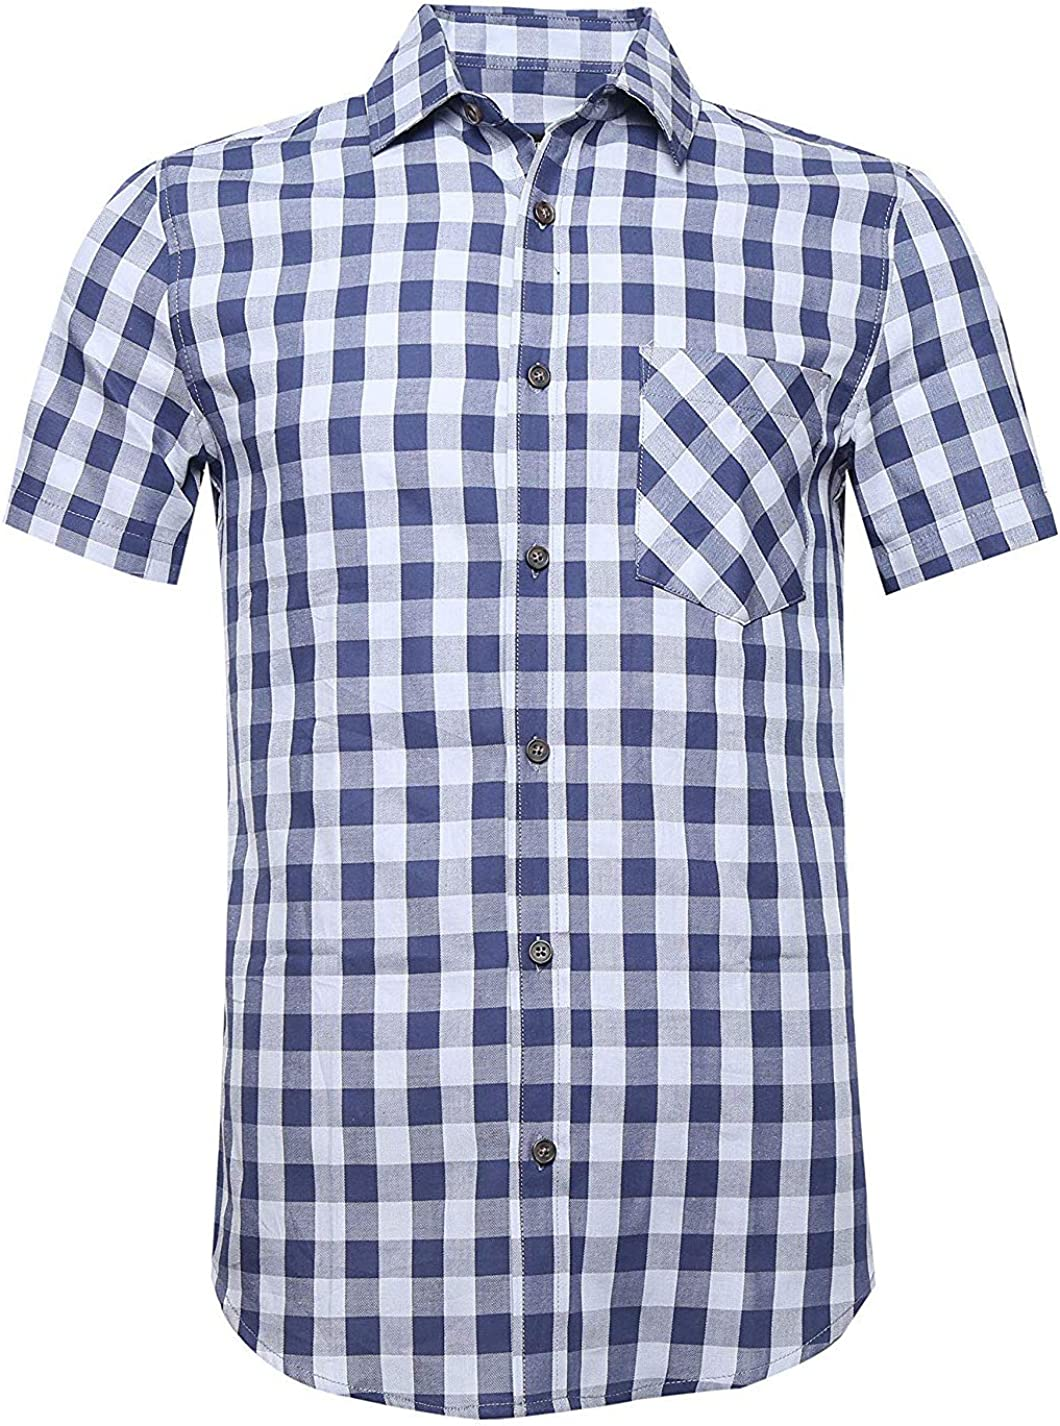 Men Plaid Cotton Max 72% OFF Casual Short Sleeve Dress Be Button Down Super sale period limited Shirts